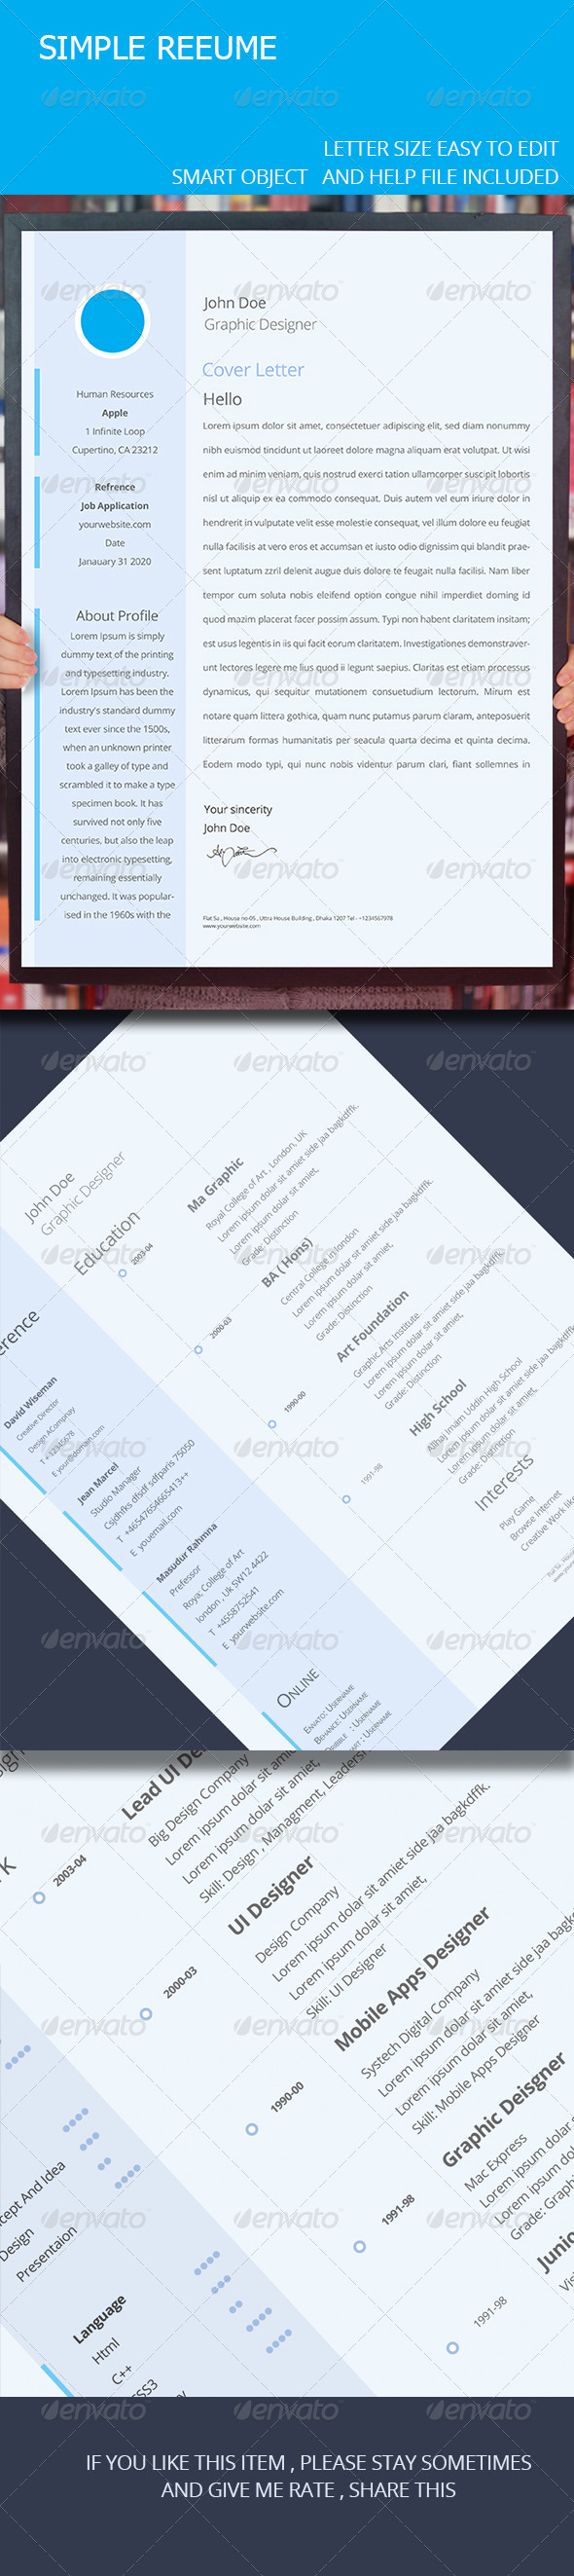 GraphicRiver Simple Resume &&& 7377077